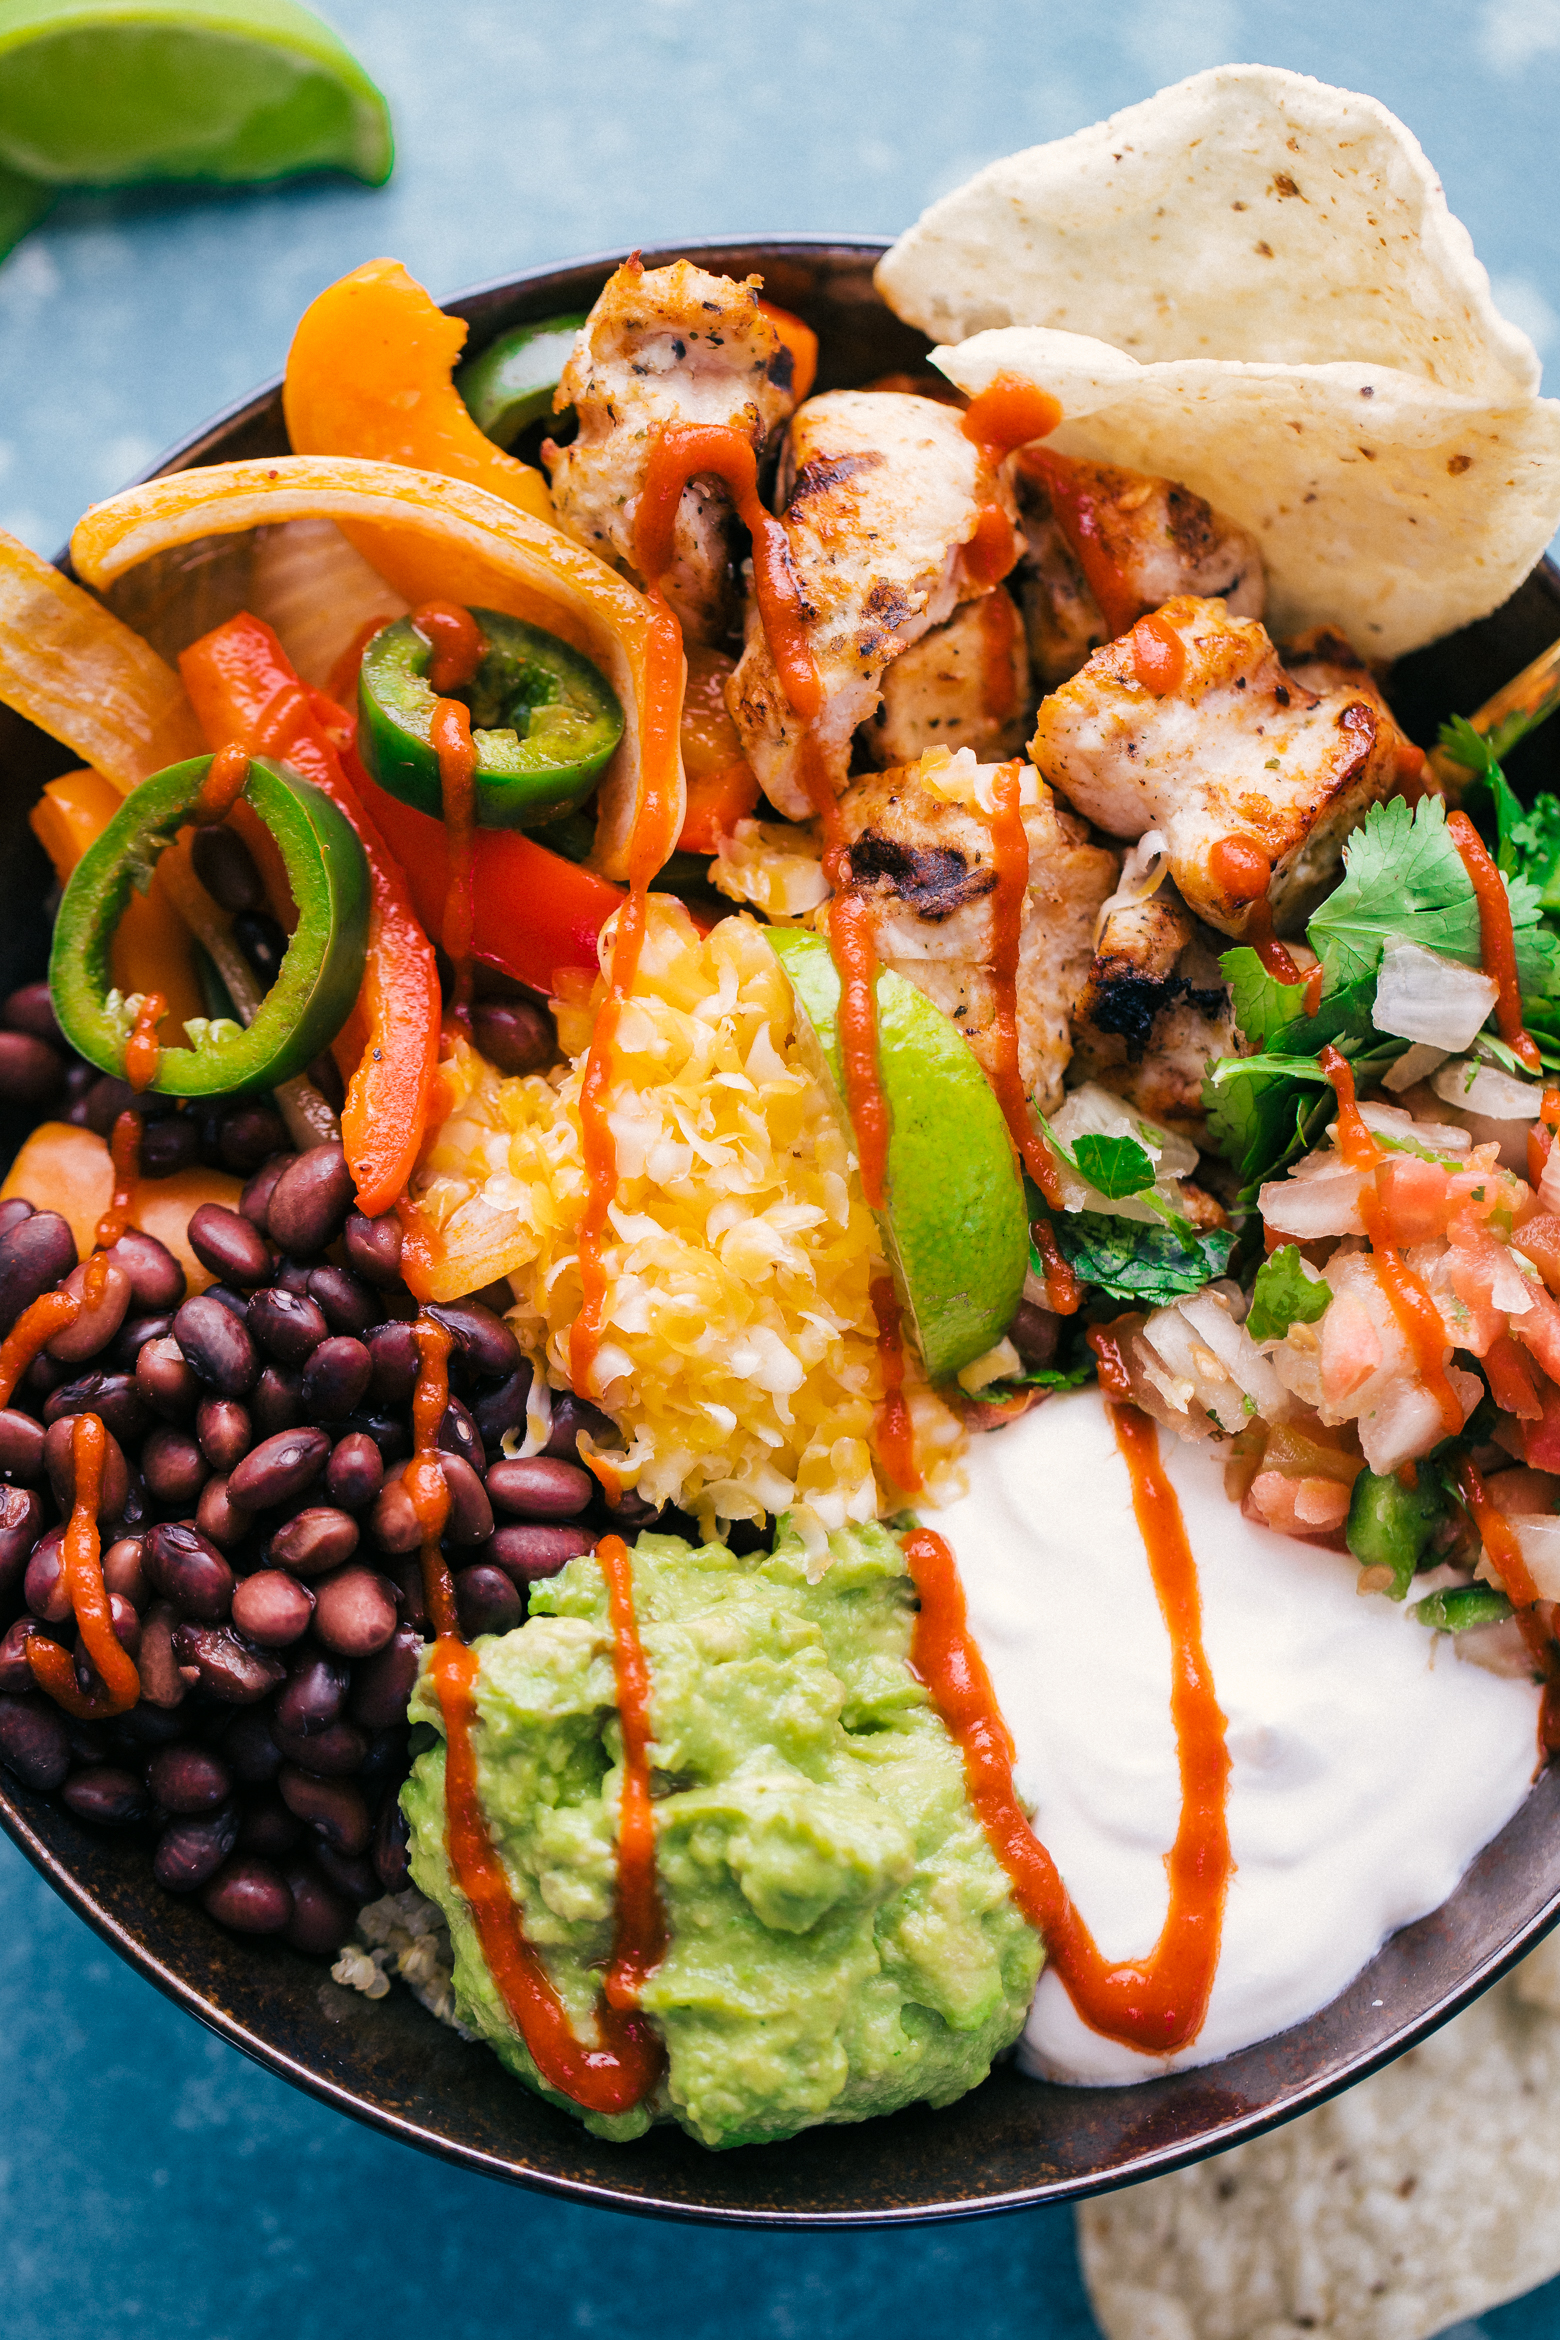 Burrito Bowl with quinoa, chicken, cheese, guacamole, black beans, and sour cream for a delicious weeknight meal, by The Food Cafe.